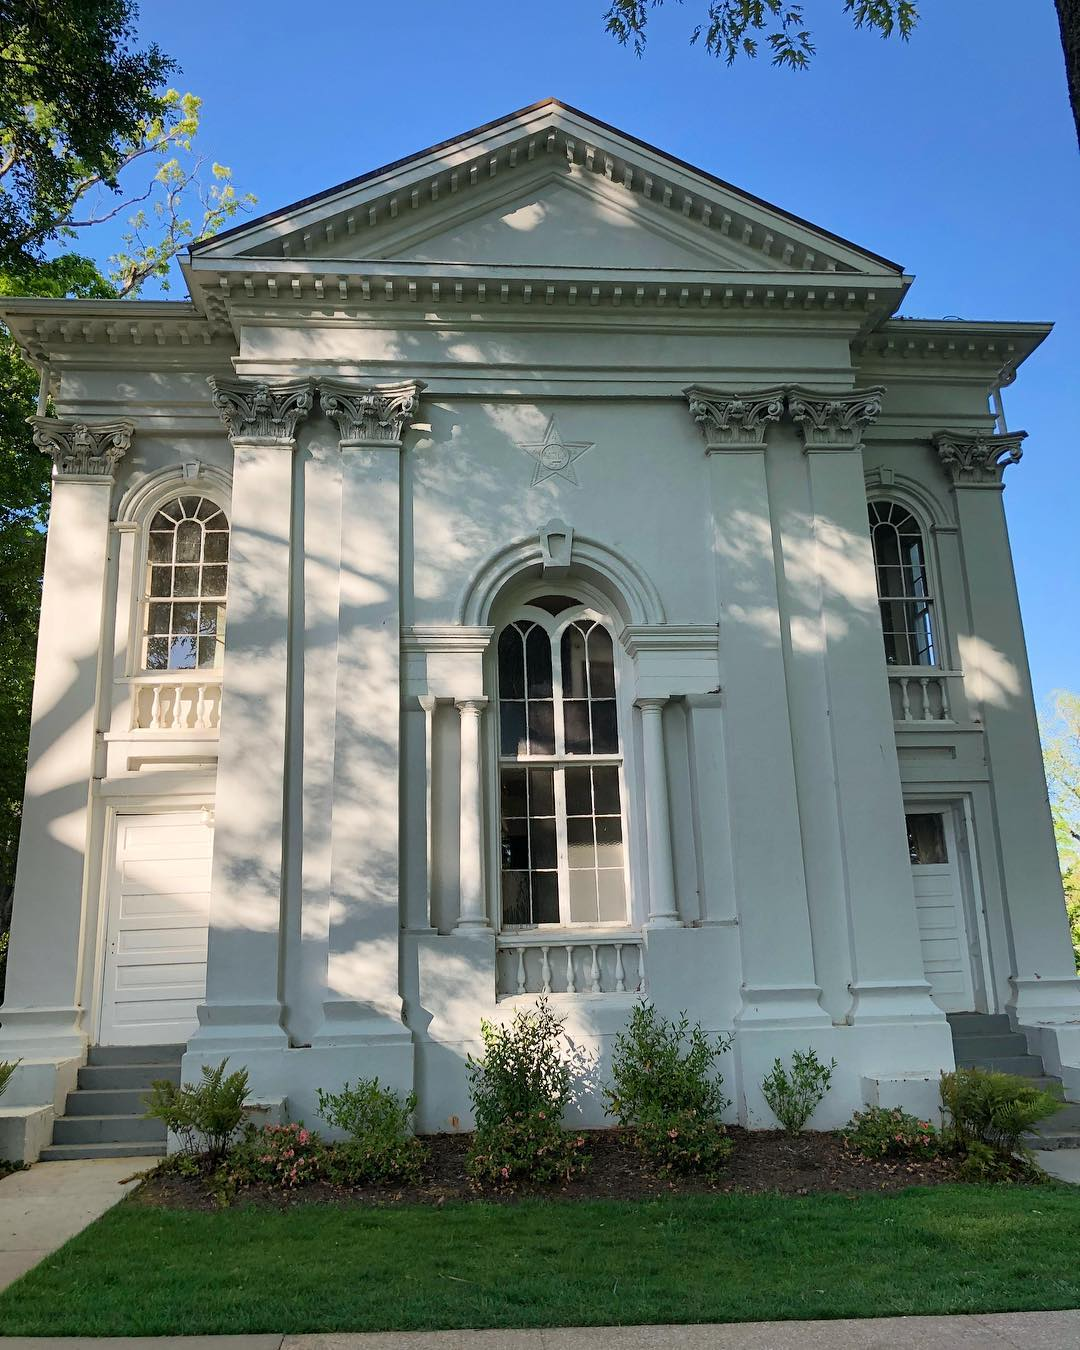 Philomathean Literary Society Hall, on the Erskine College Quad, was built in 1859